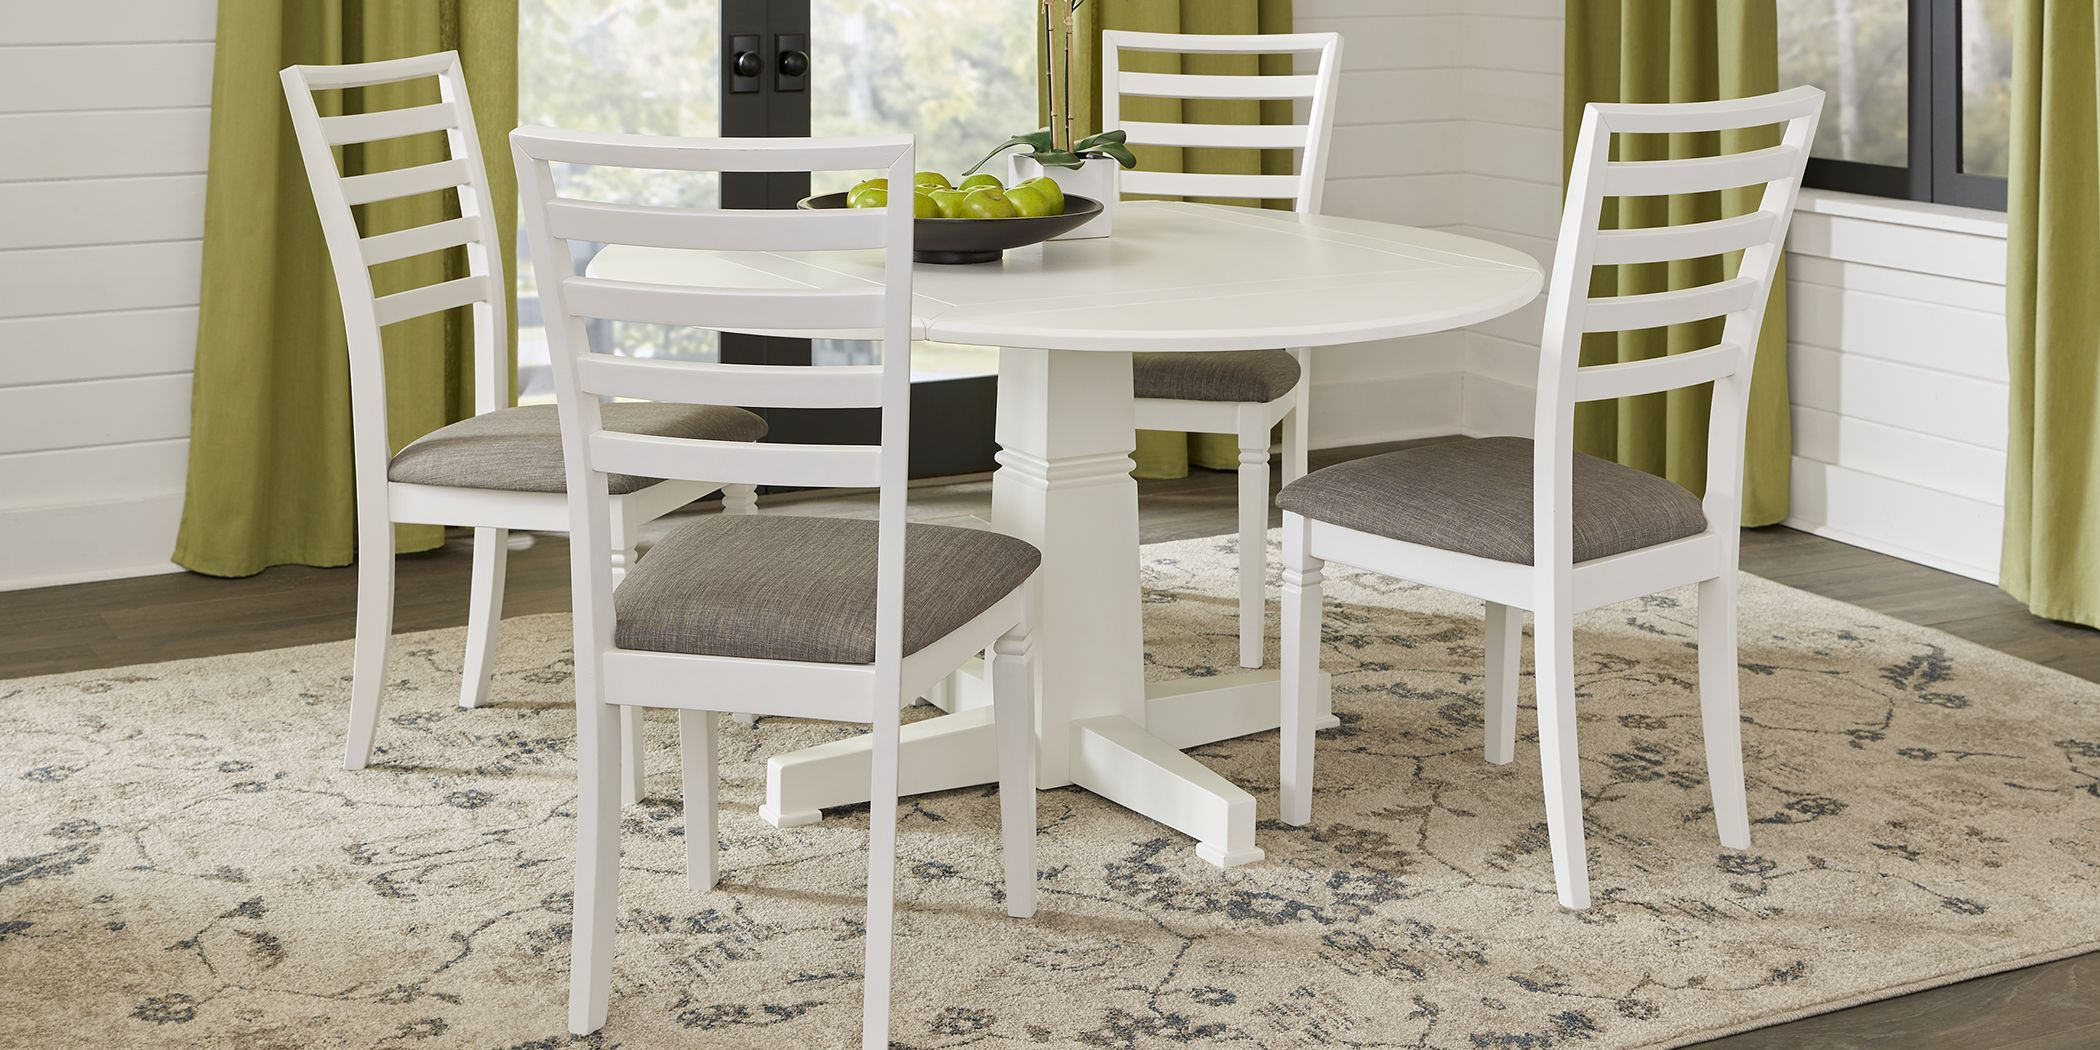 Riverdale White 5 Pc Round Dining Room With Ladder Back Chairs